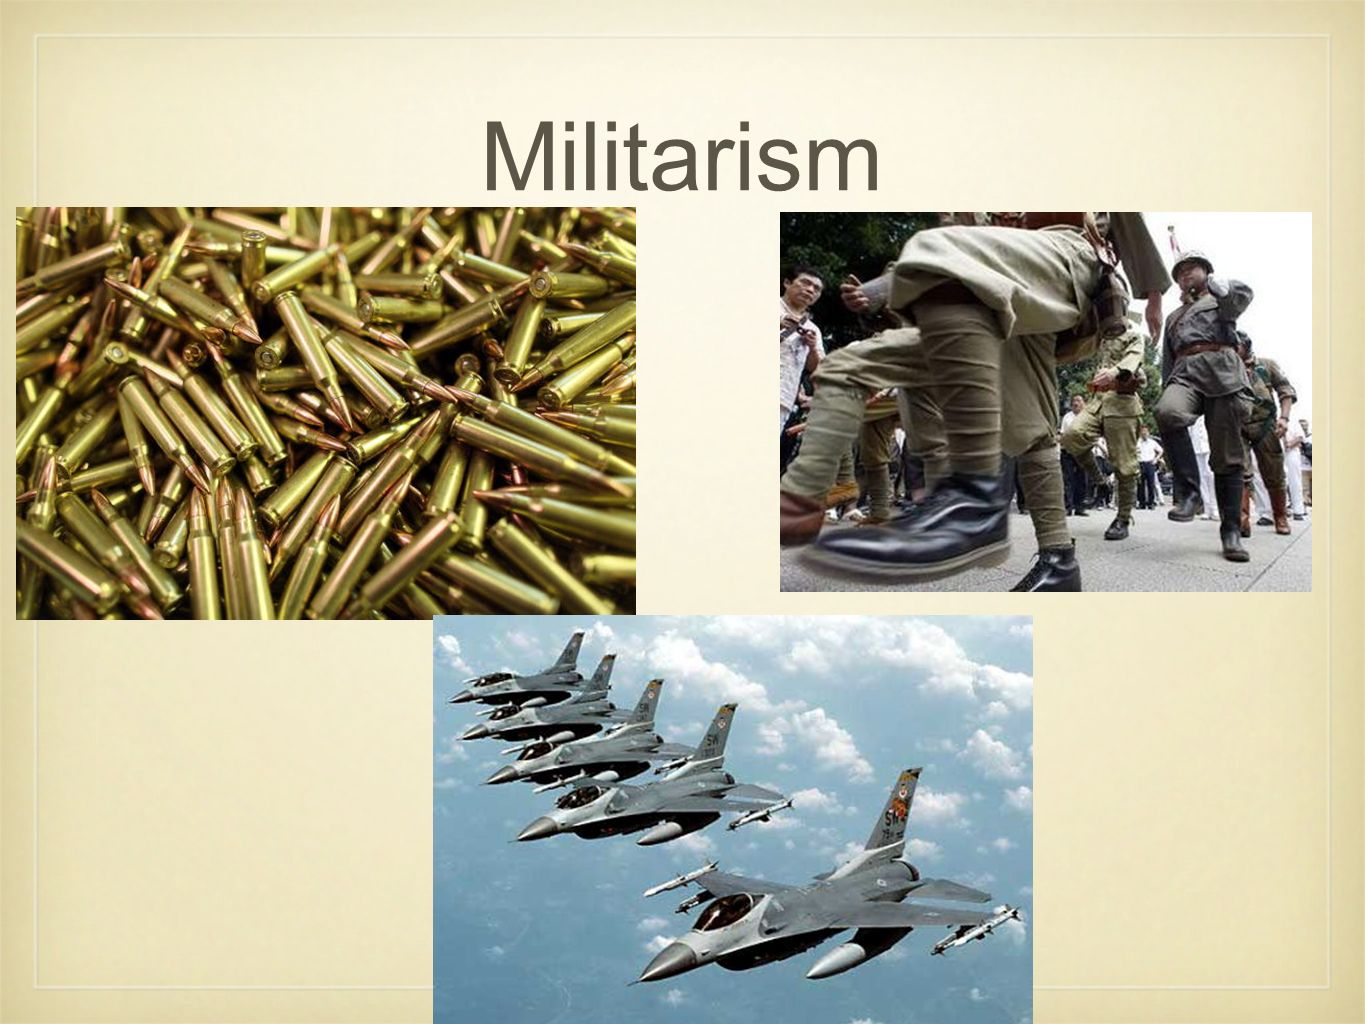 How does a strong military help a country?